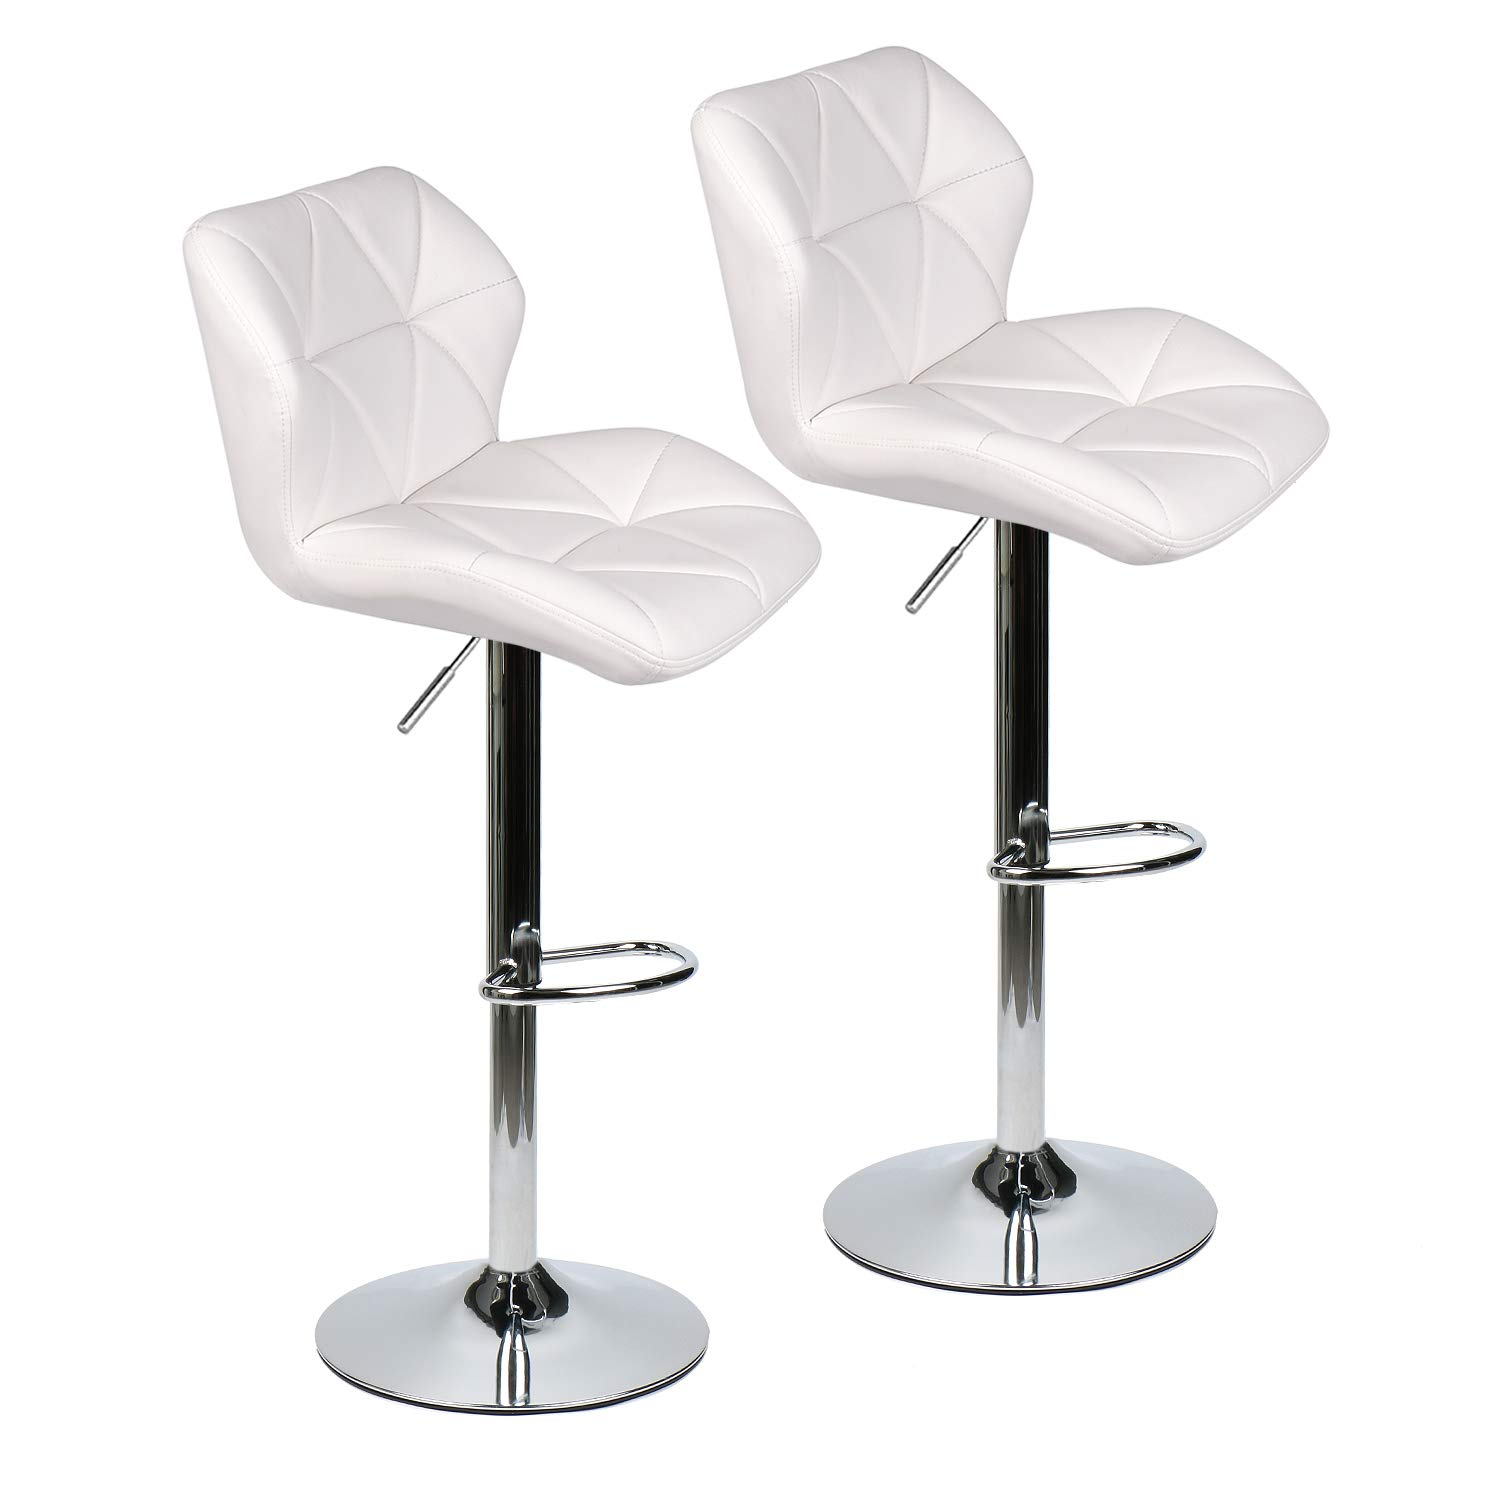 ELECWISH Bar Stools Set of 2 White PU Leather Seat with Chrome Base Swivel Dining Chair Barstools White 2pc